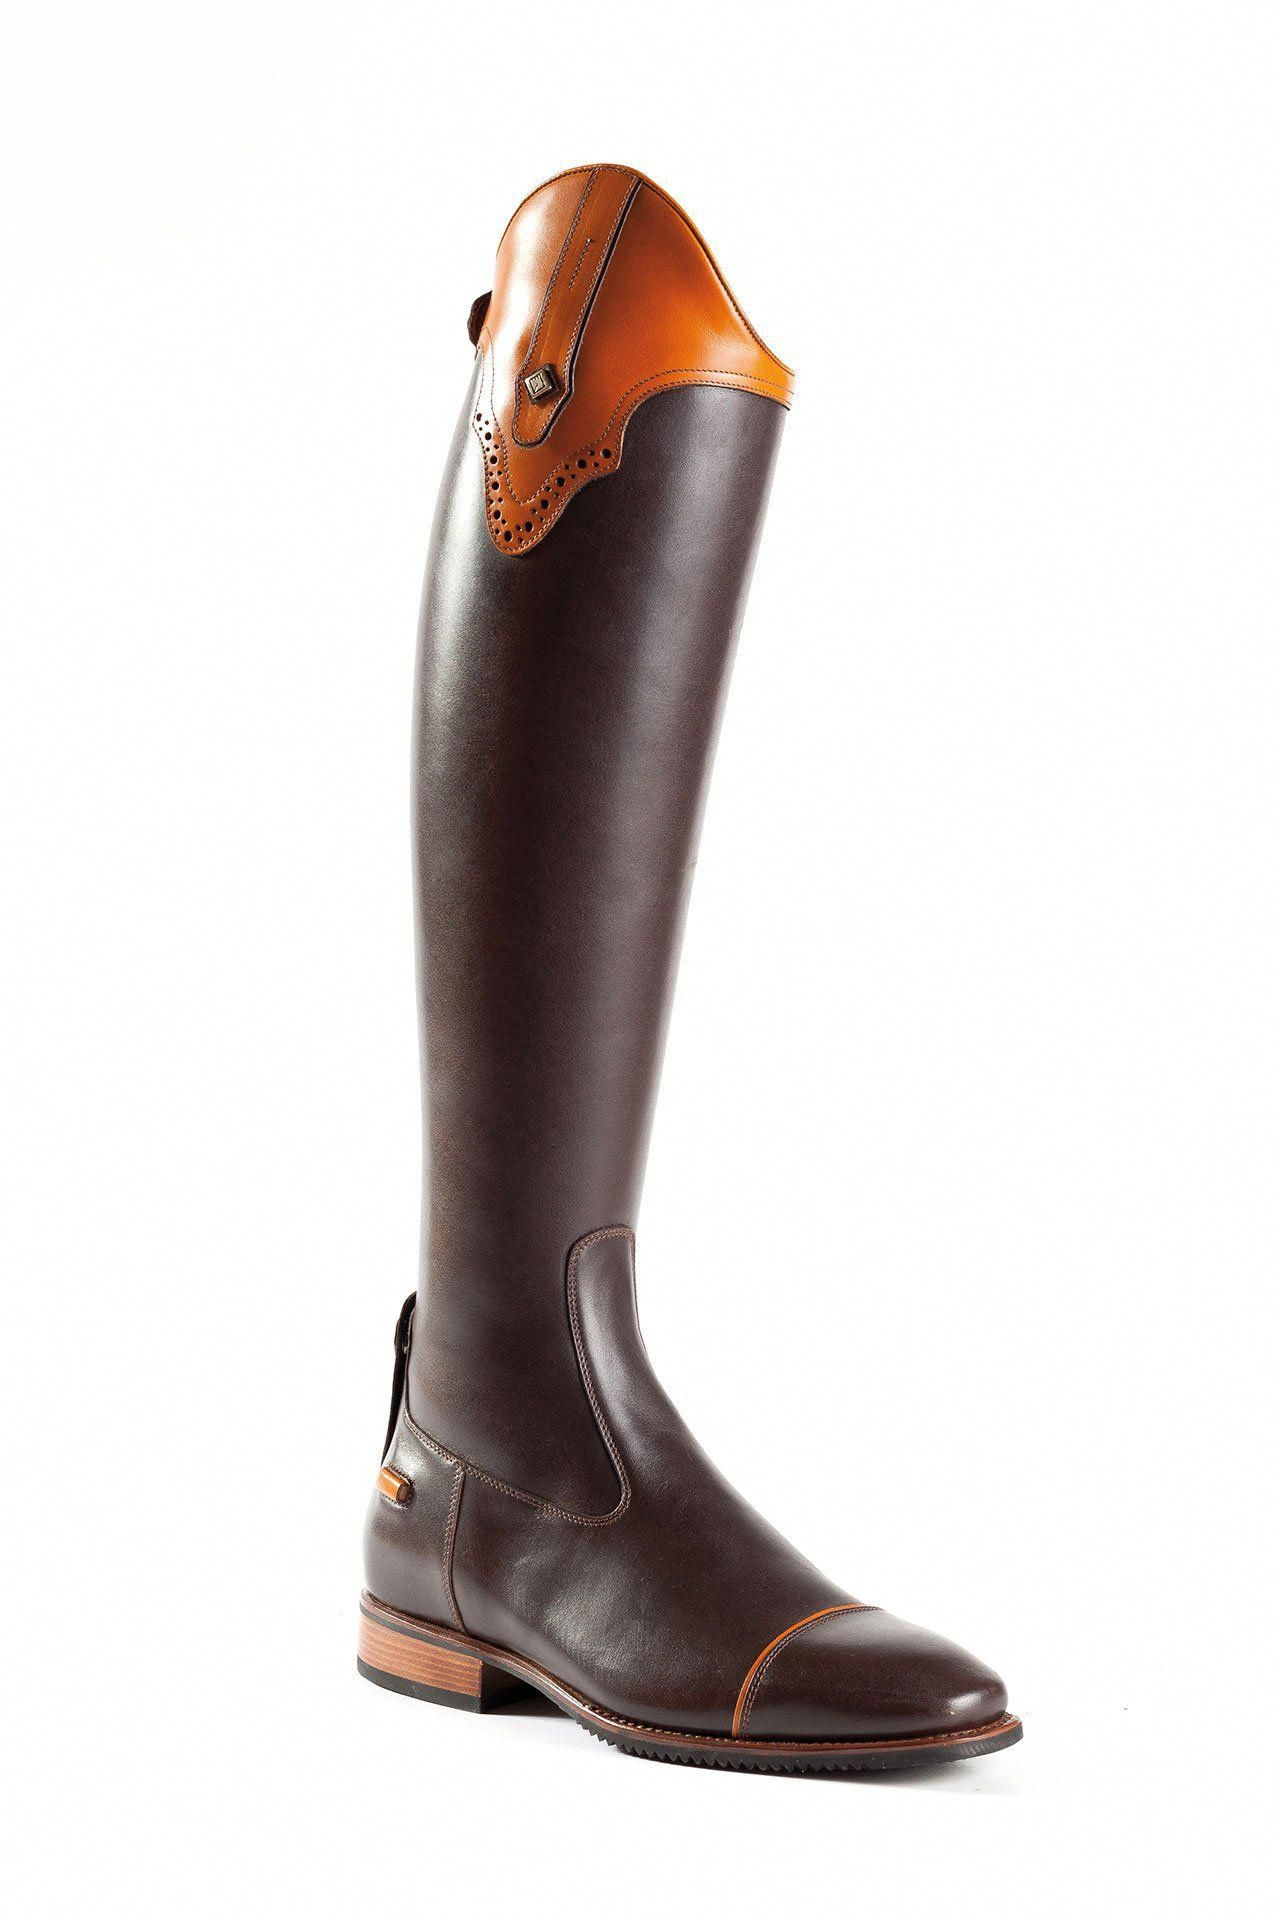 Brown American Top Riding Boots Horse riding boots